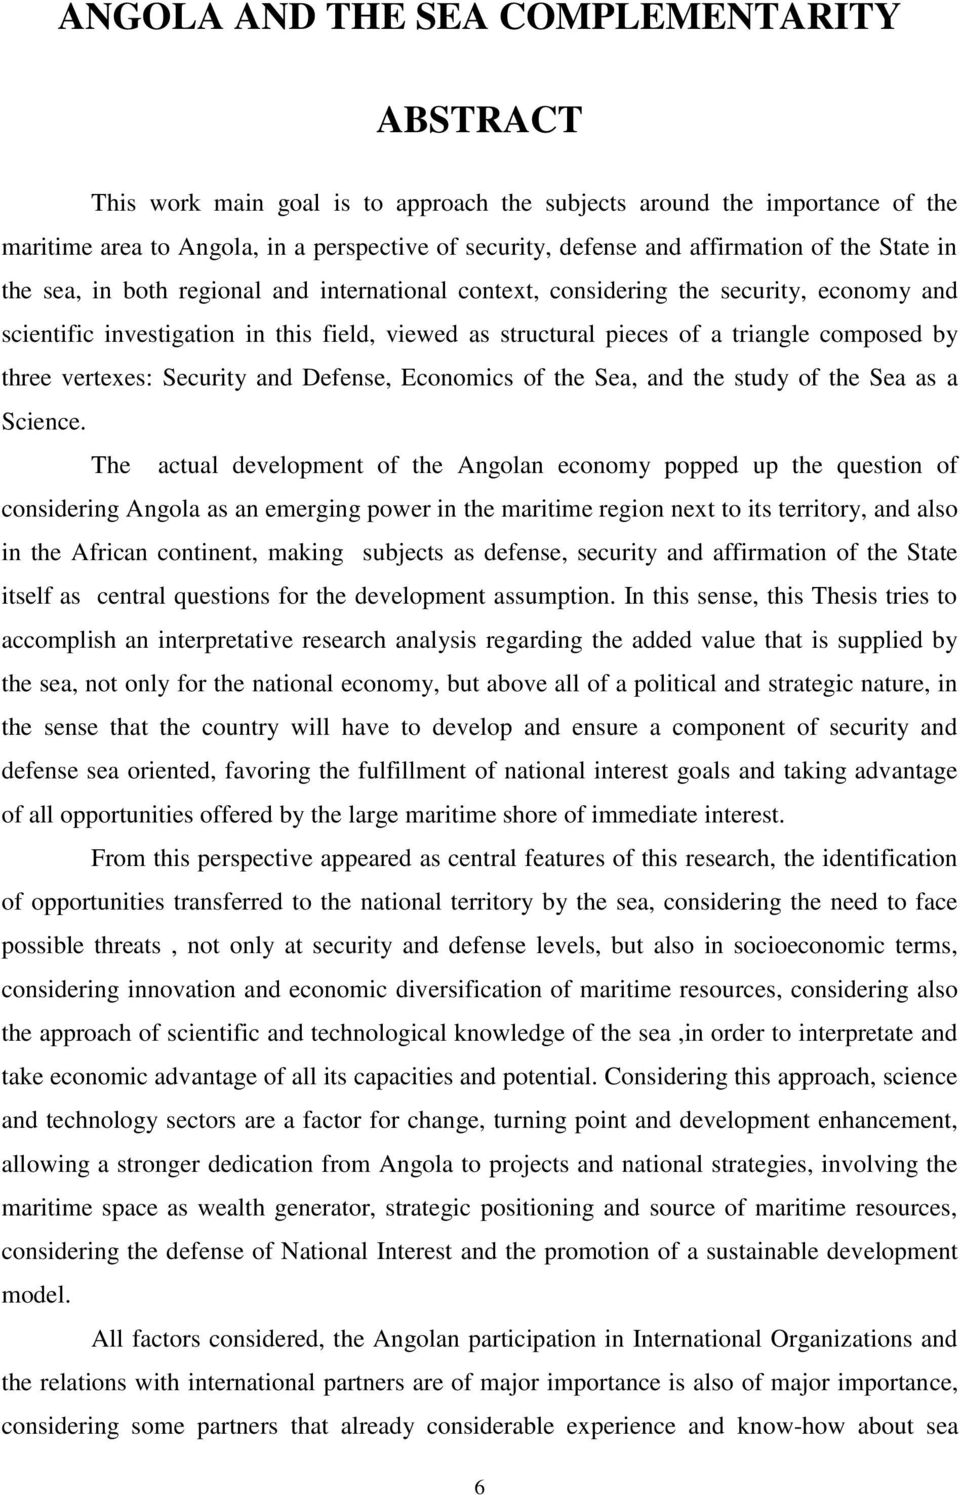 by three vertexes: Security and Defense, Economics of the Sea, and the study of the Sea as a Science.